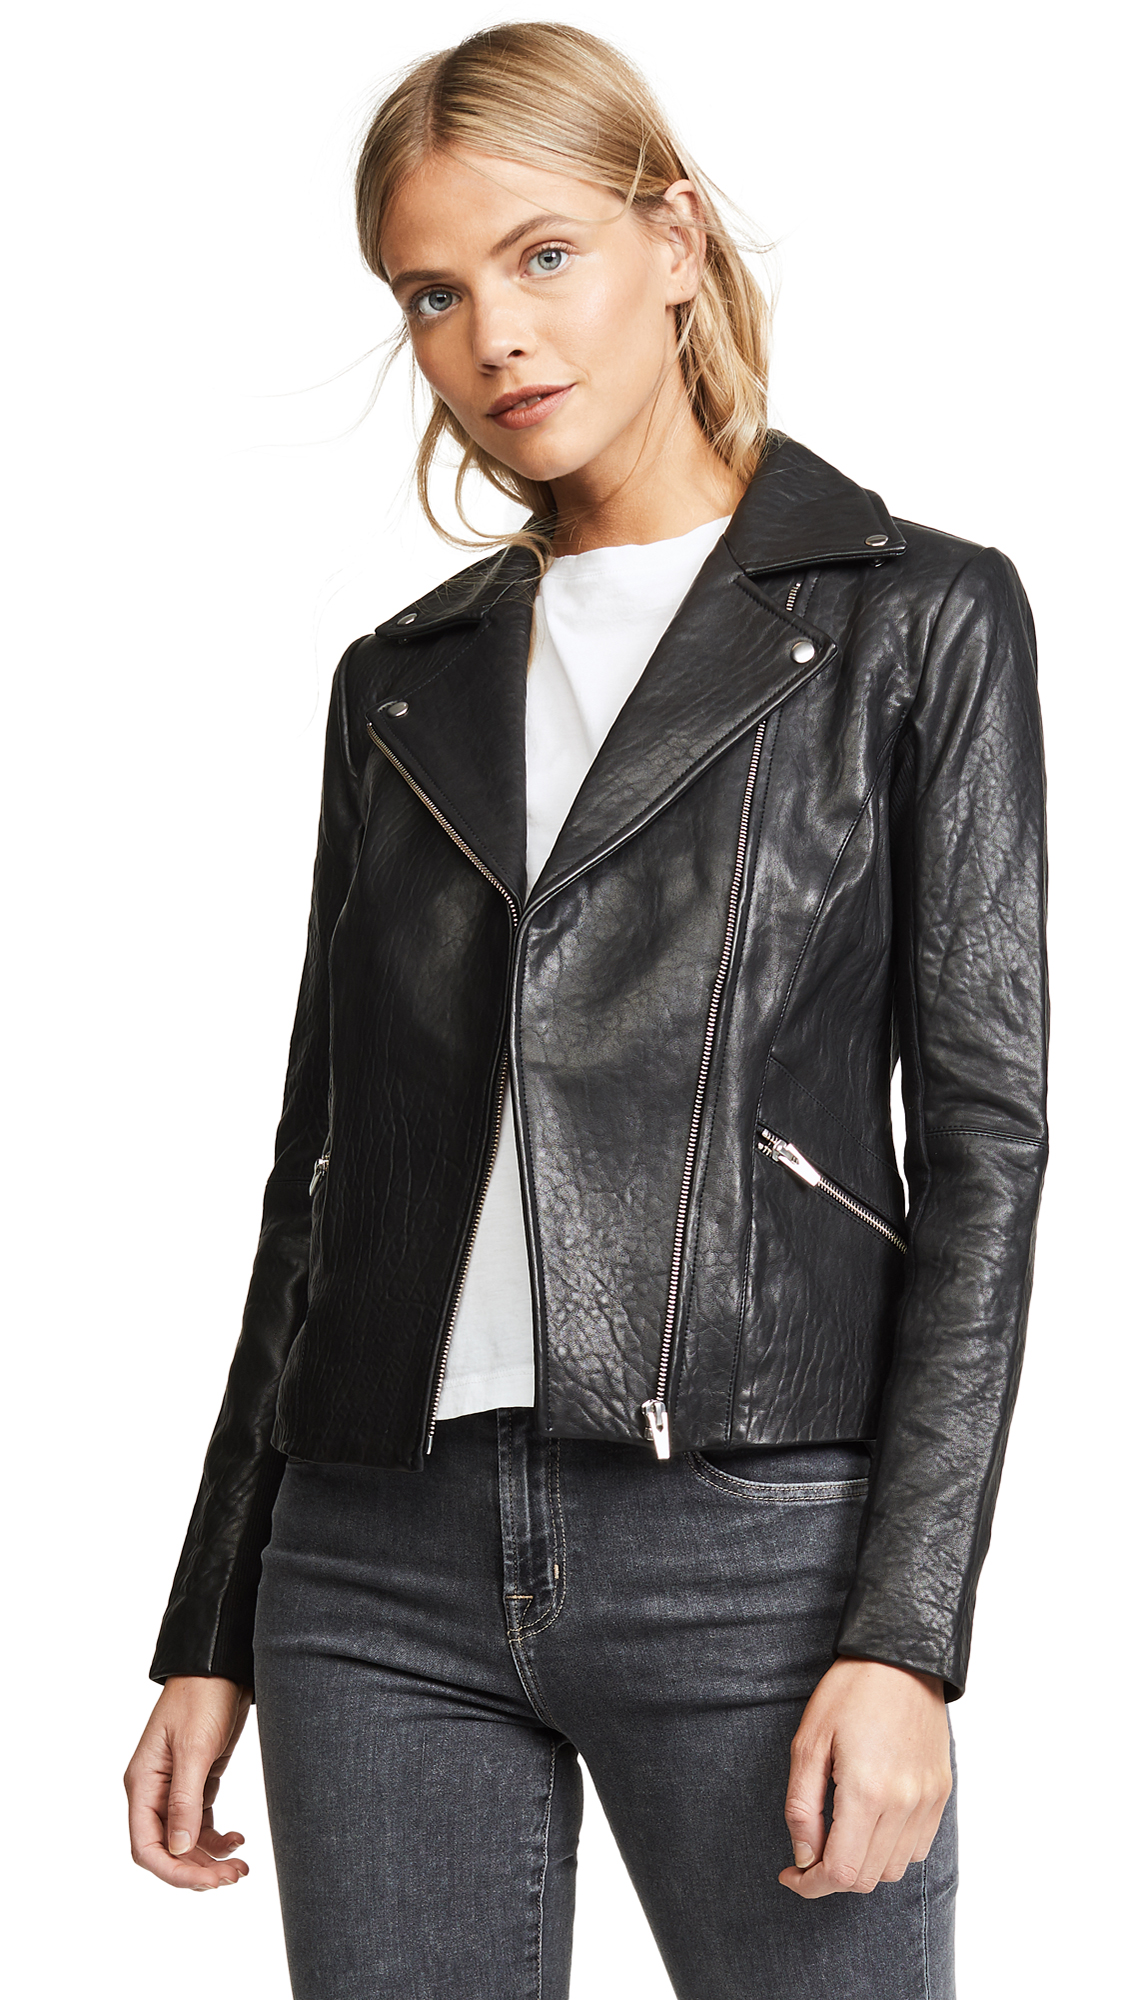 VEDA Dallas Leather Jacket - Black